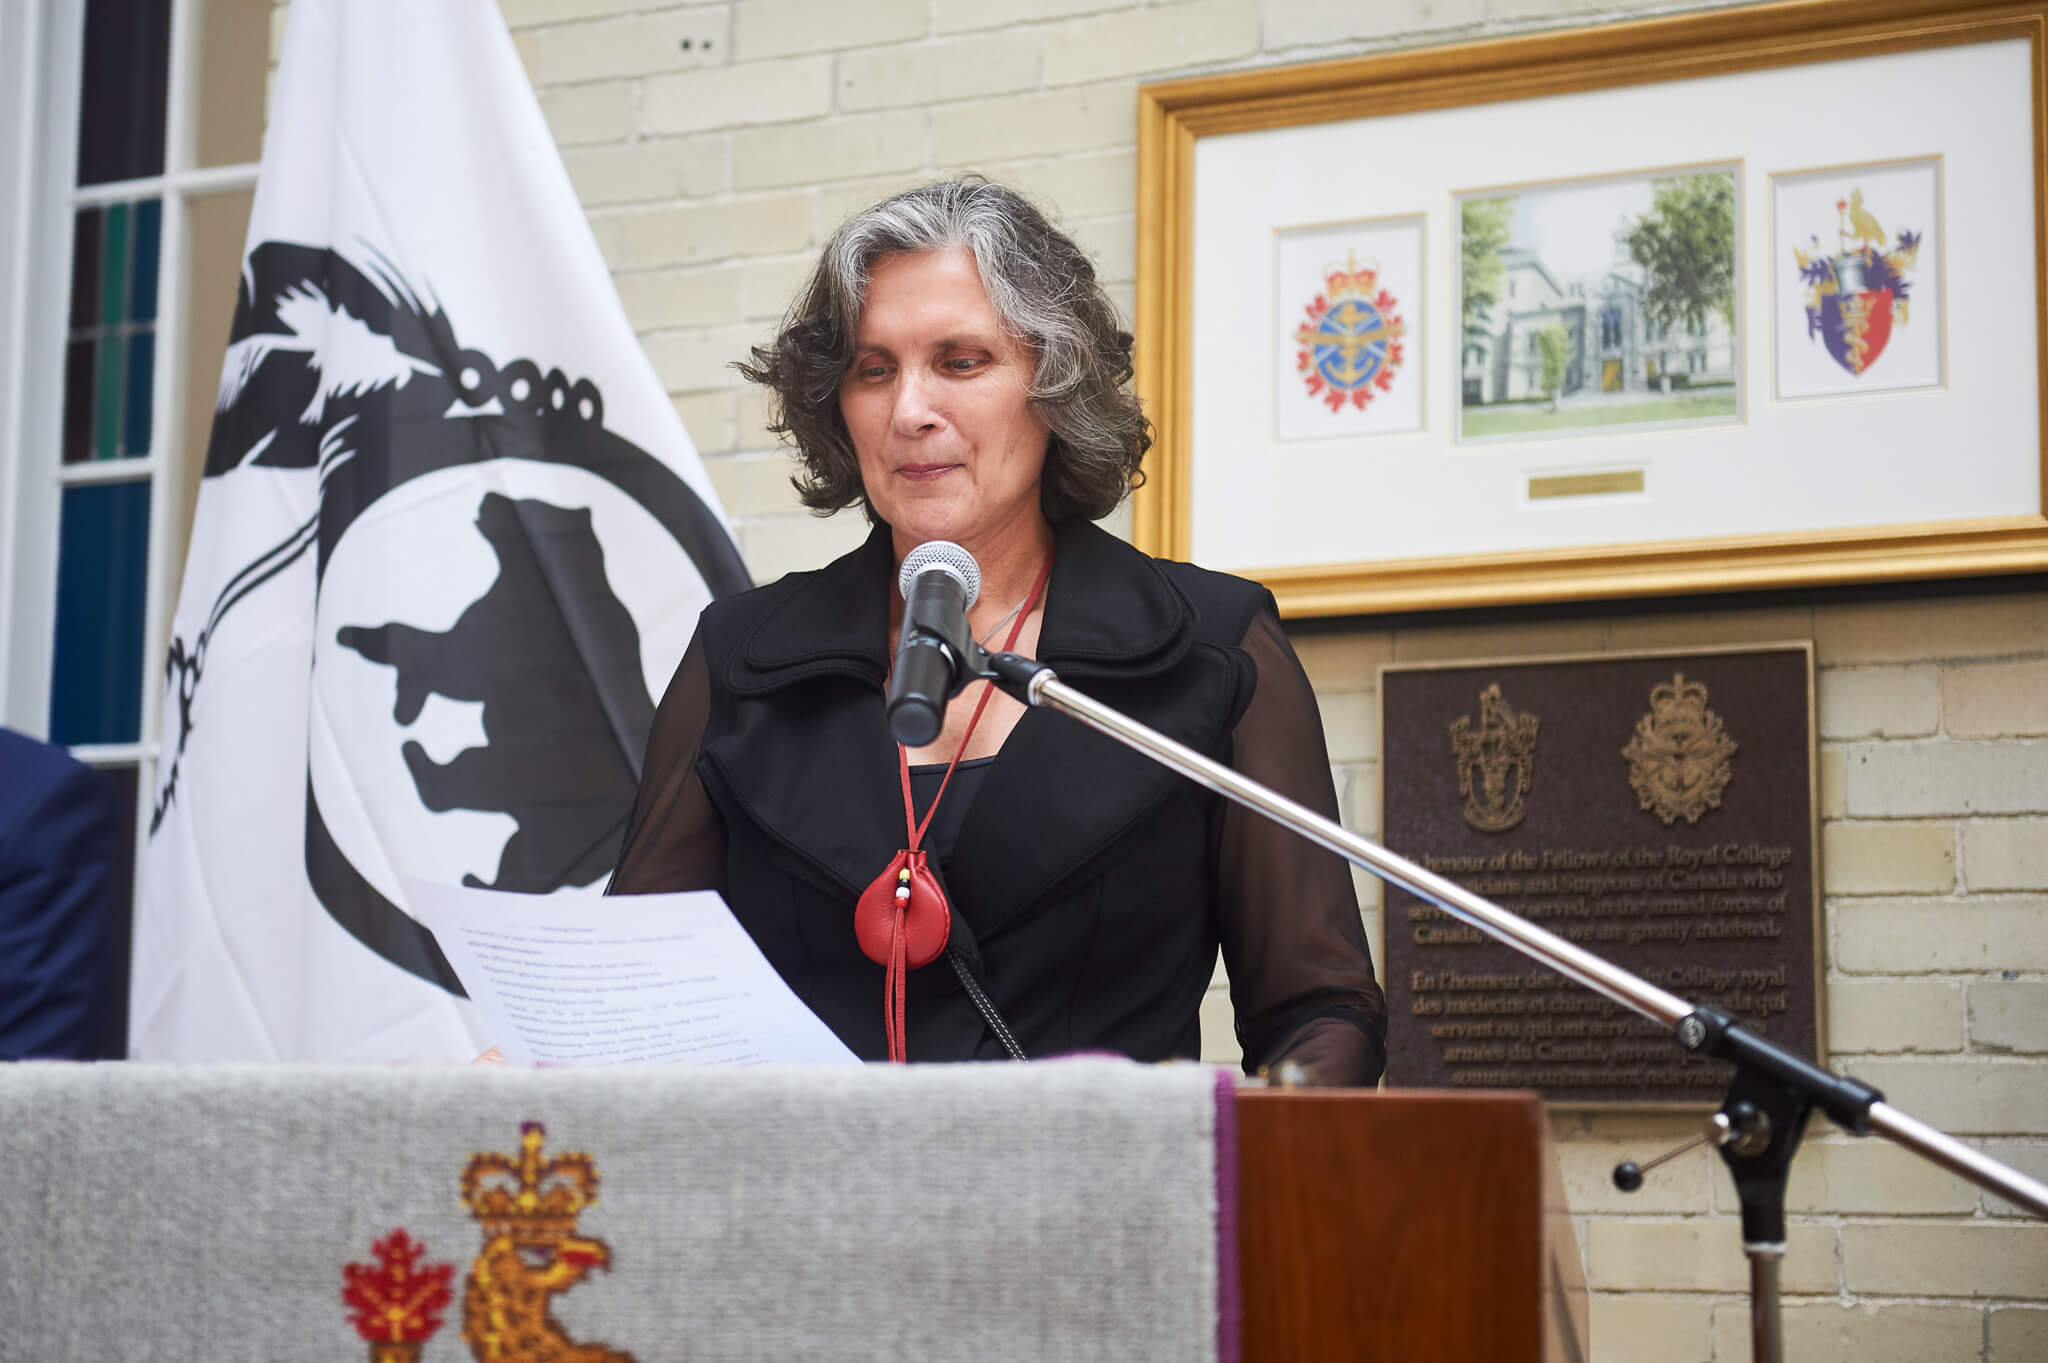 Councillor Wendy-Anne Jocko at the Algonquins of Pikwakanagan First Nation flag raising ceremony in June 2019. The flag is visible to her left.